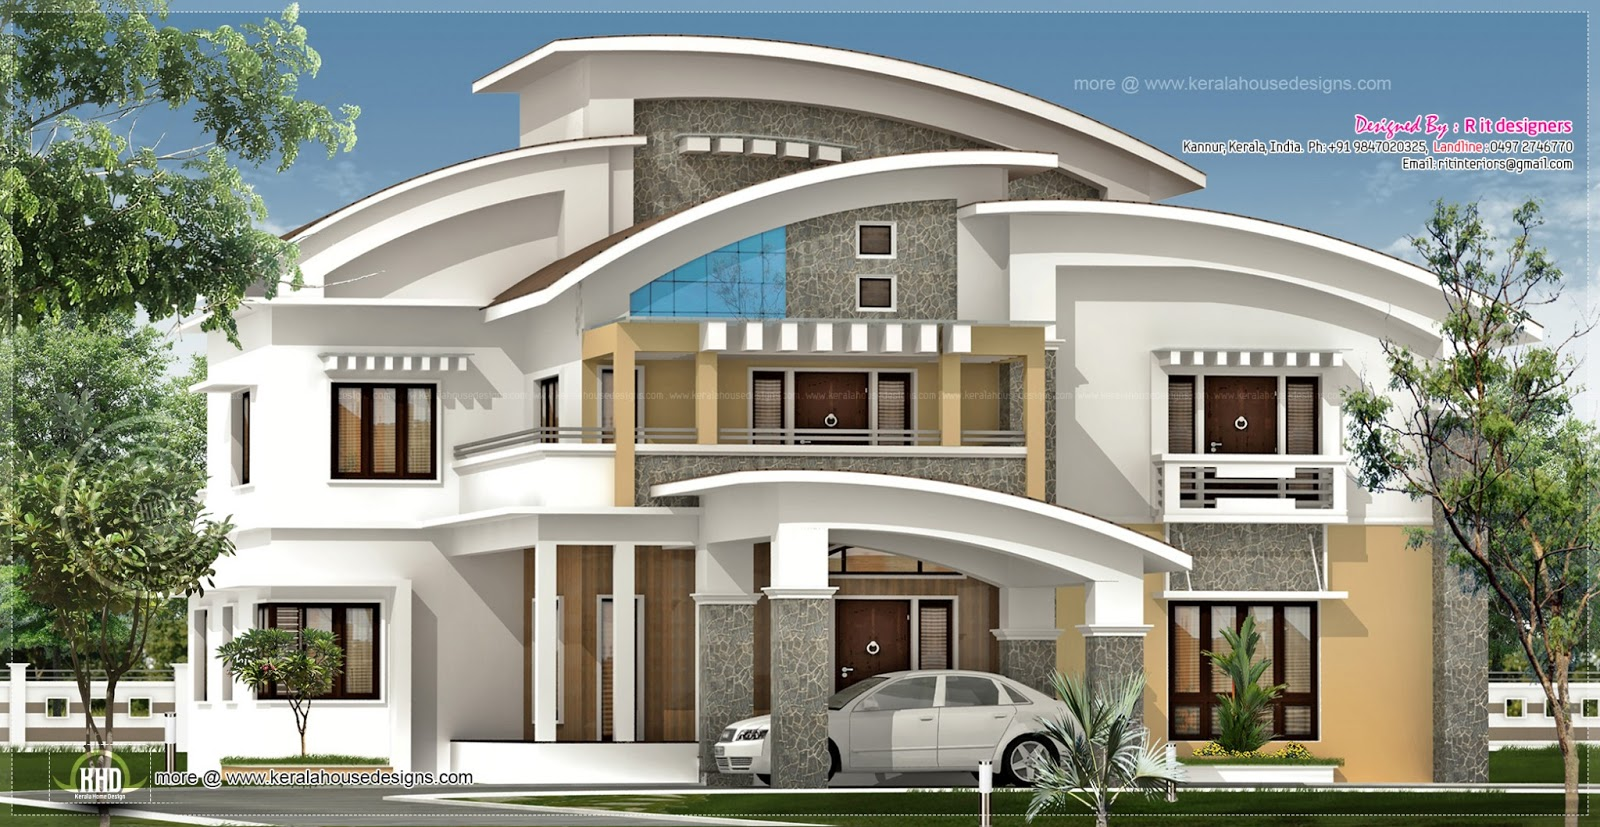 3750 square feet luxury villa exterior kerala home design and floor plans - Luxury home designs and floor plans ...